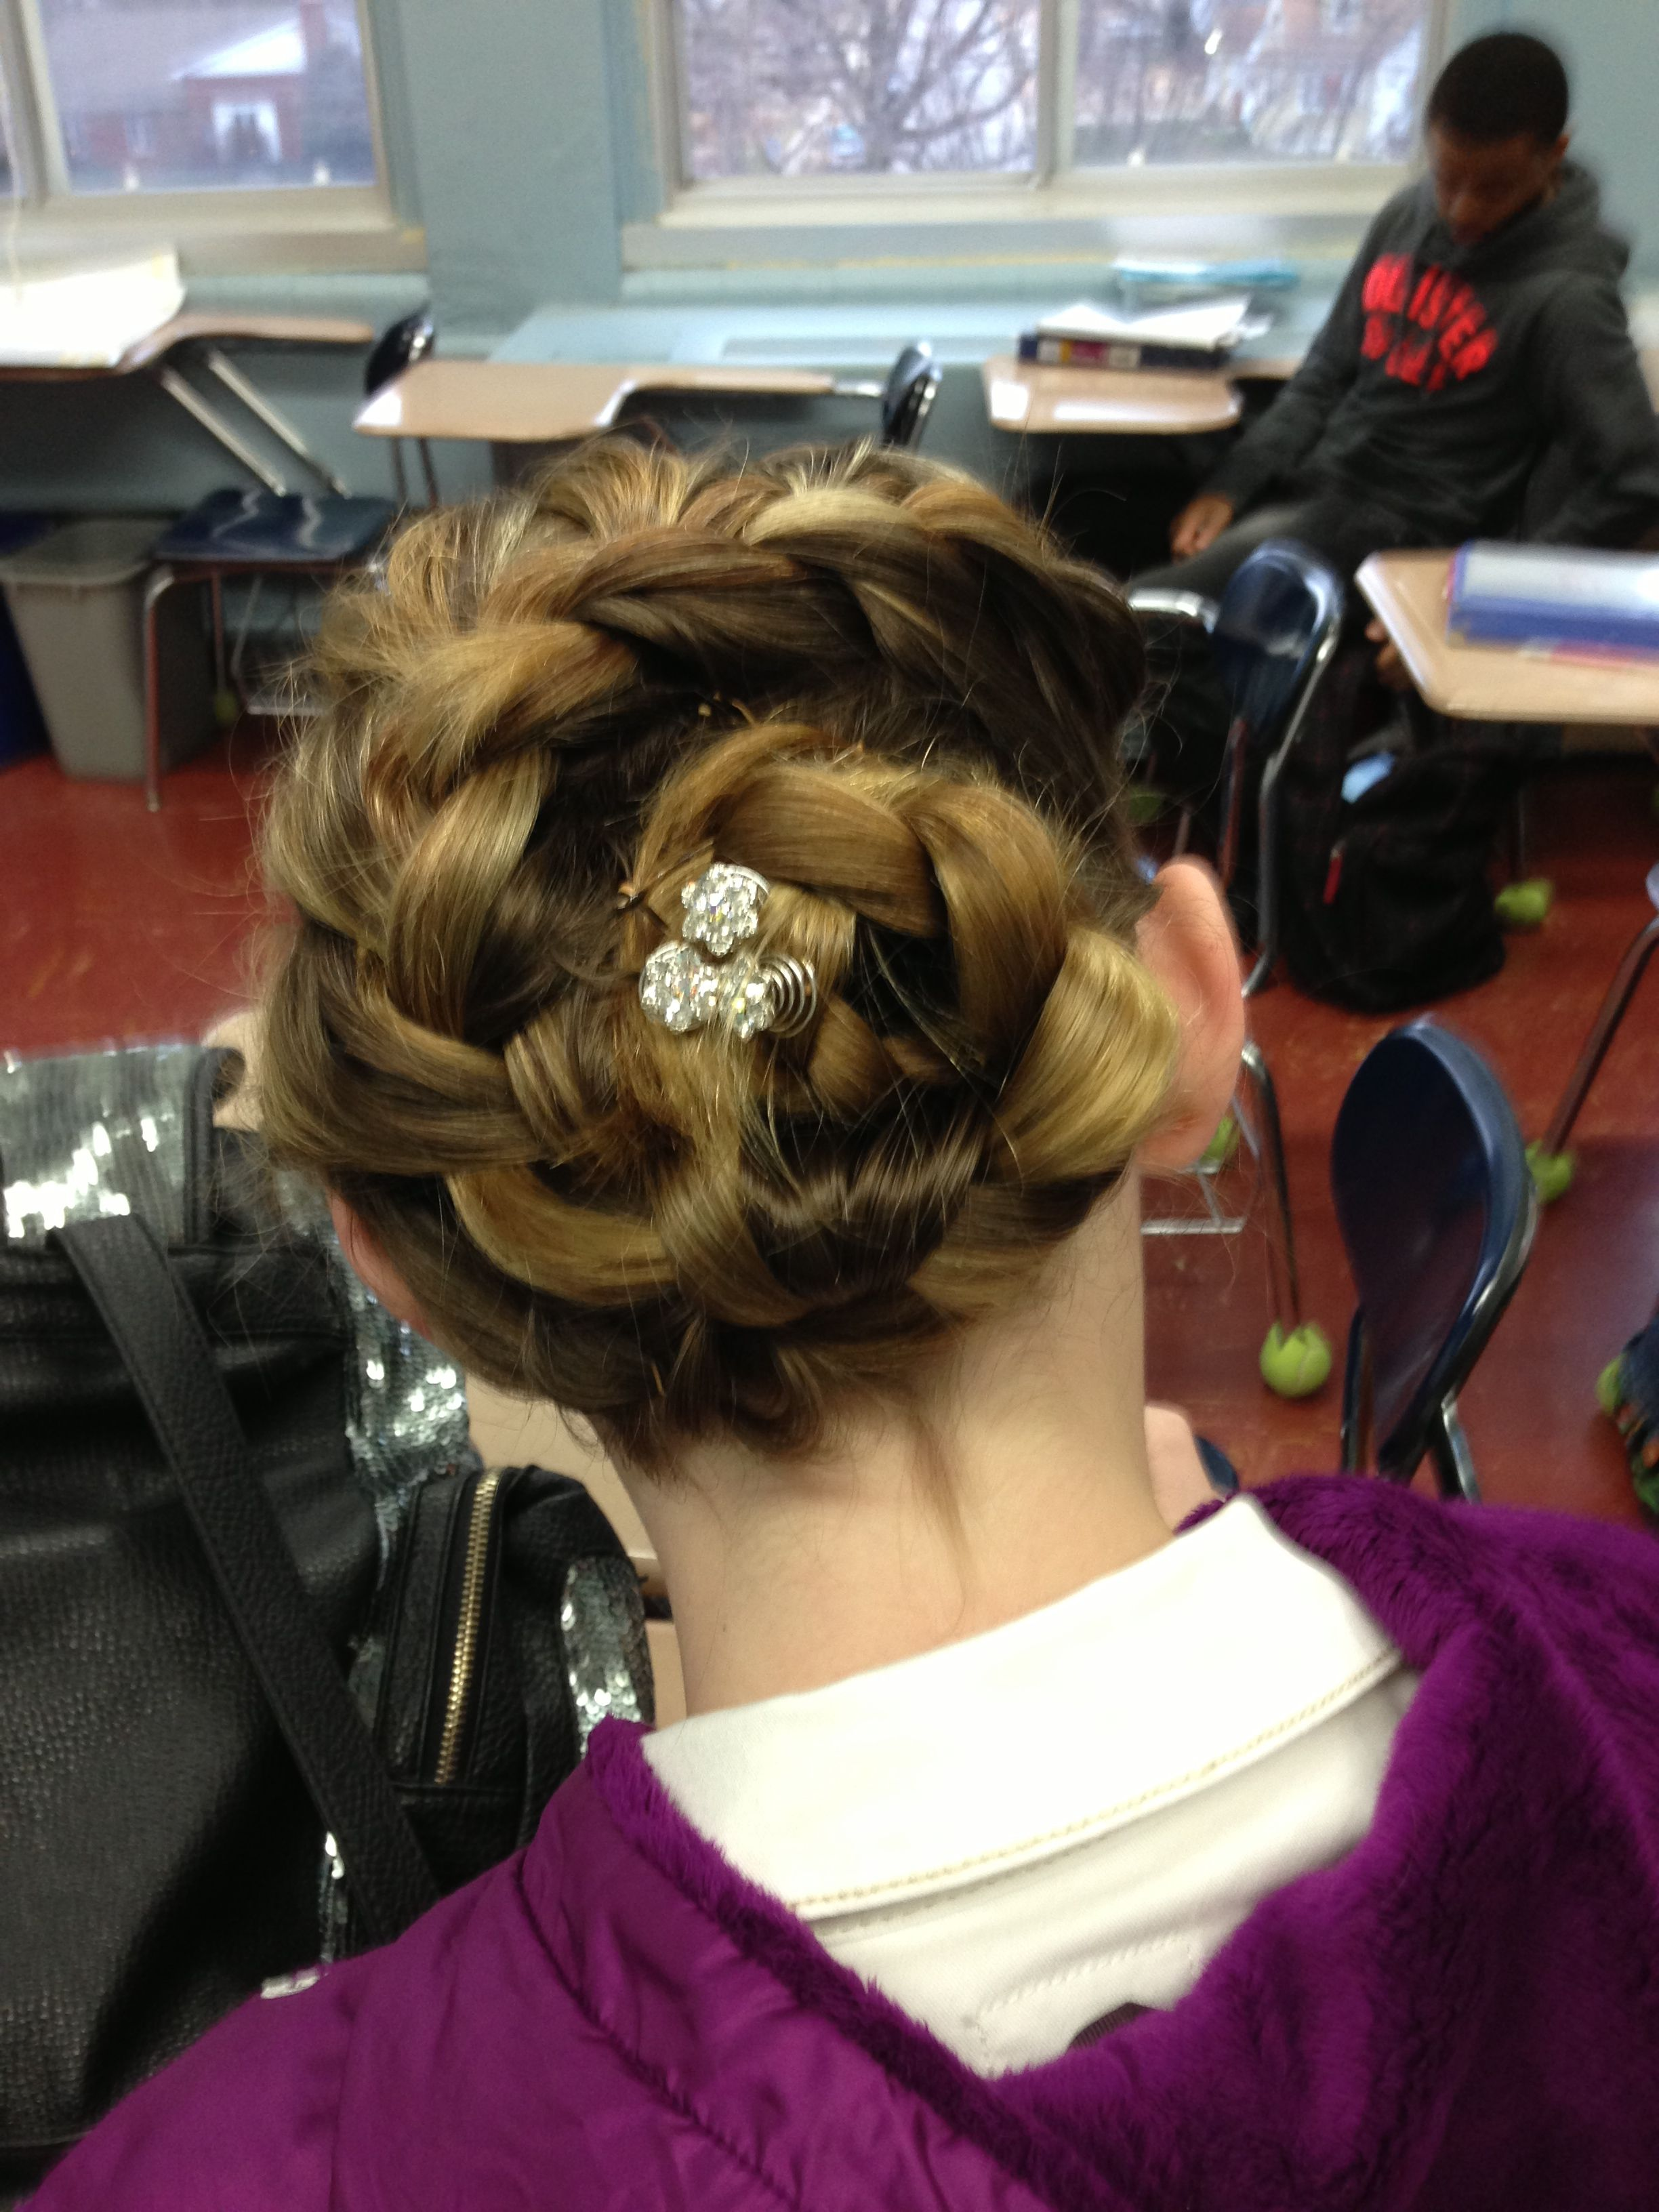 Coolest braid I've ever seen. And it wasn't even that hard...